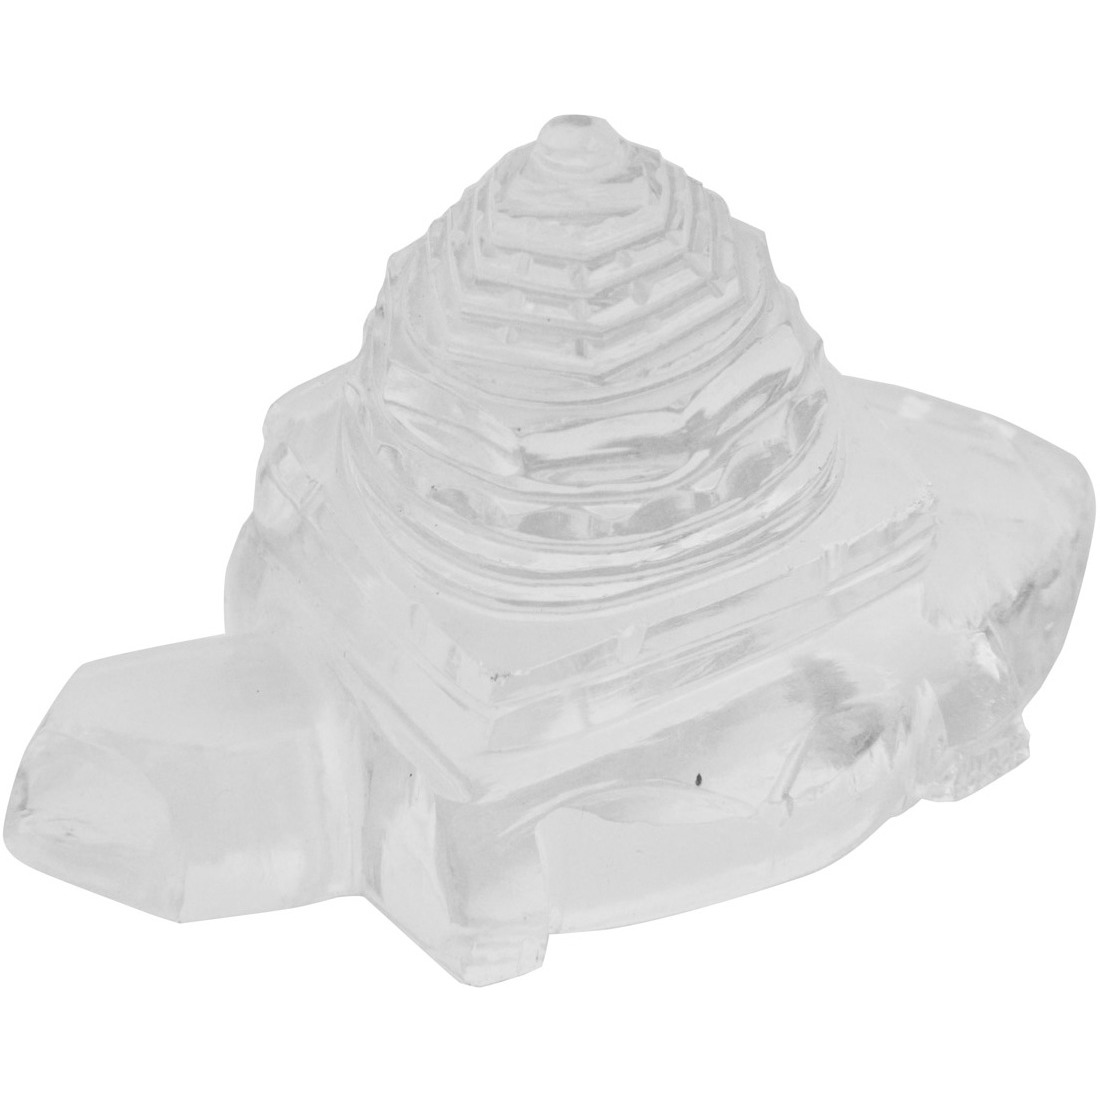 Shri Yantra on Tortoise Carved in Real Crystal